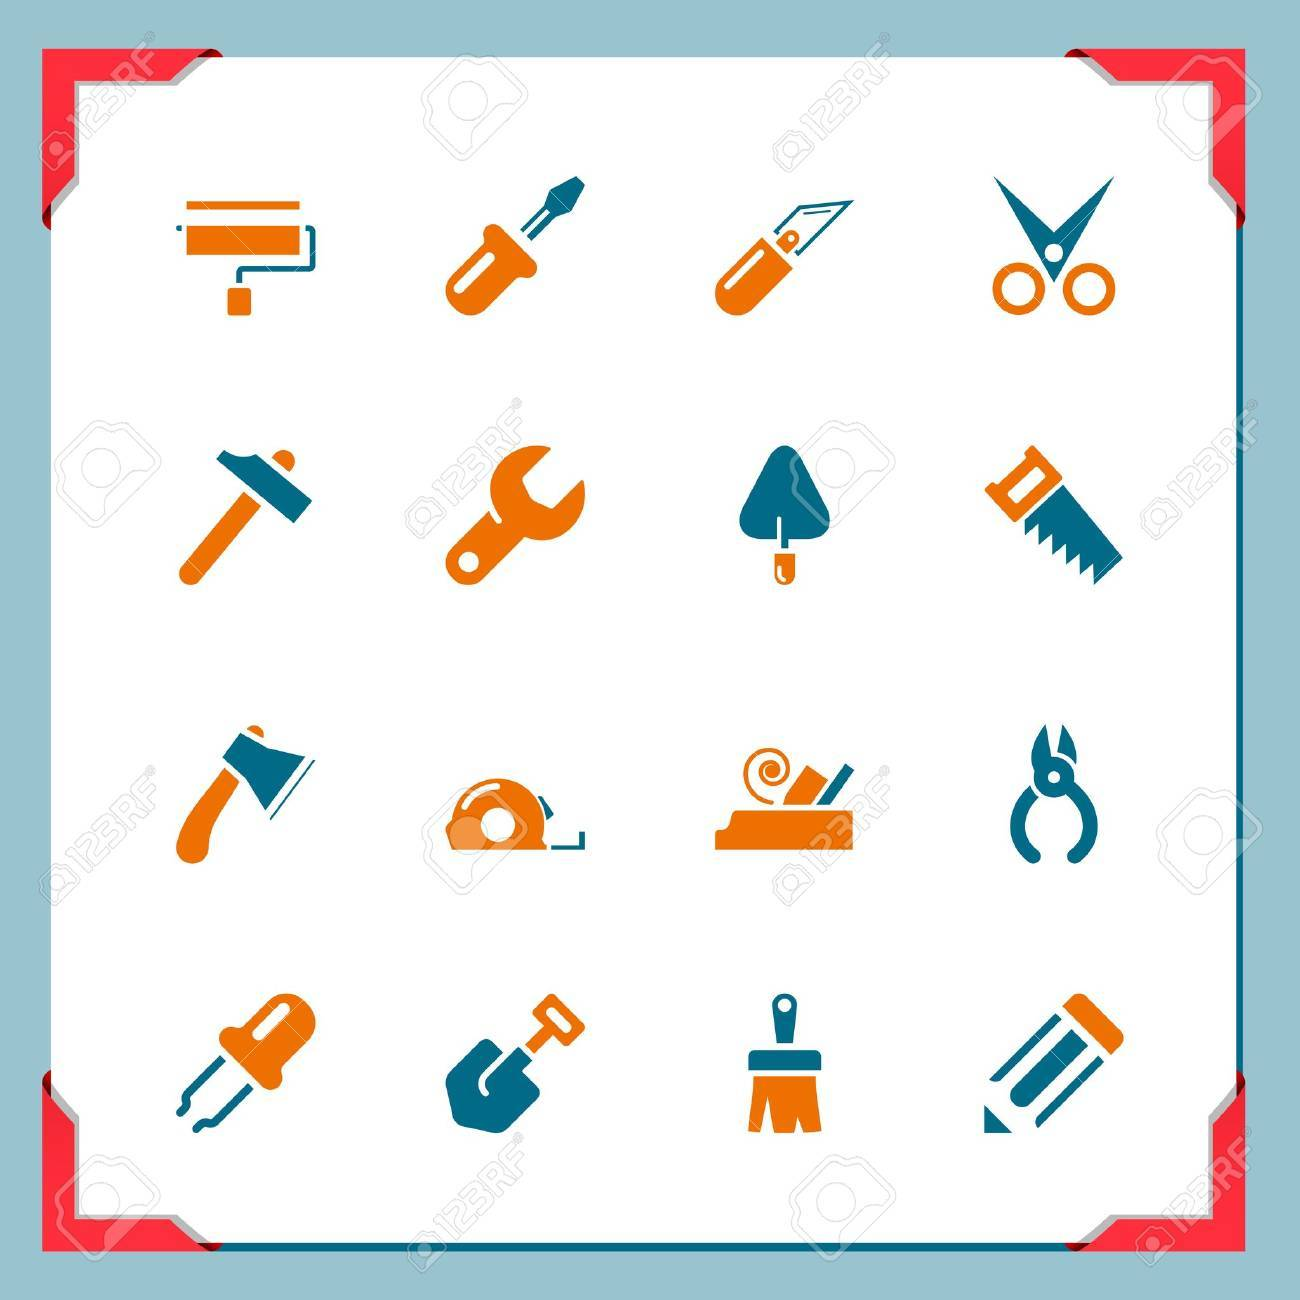 Work tools icons   In a frame series Stock Vector - 15442152